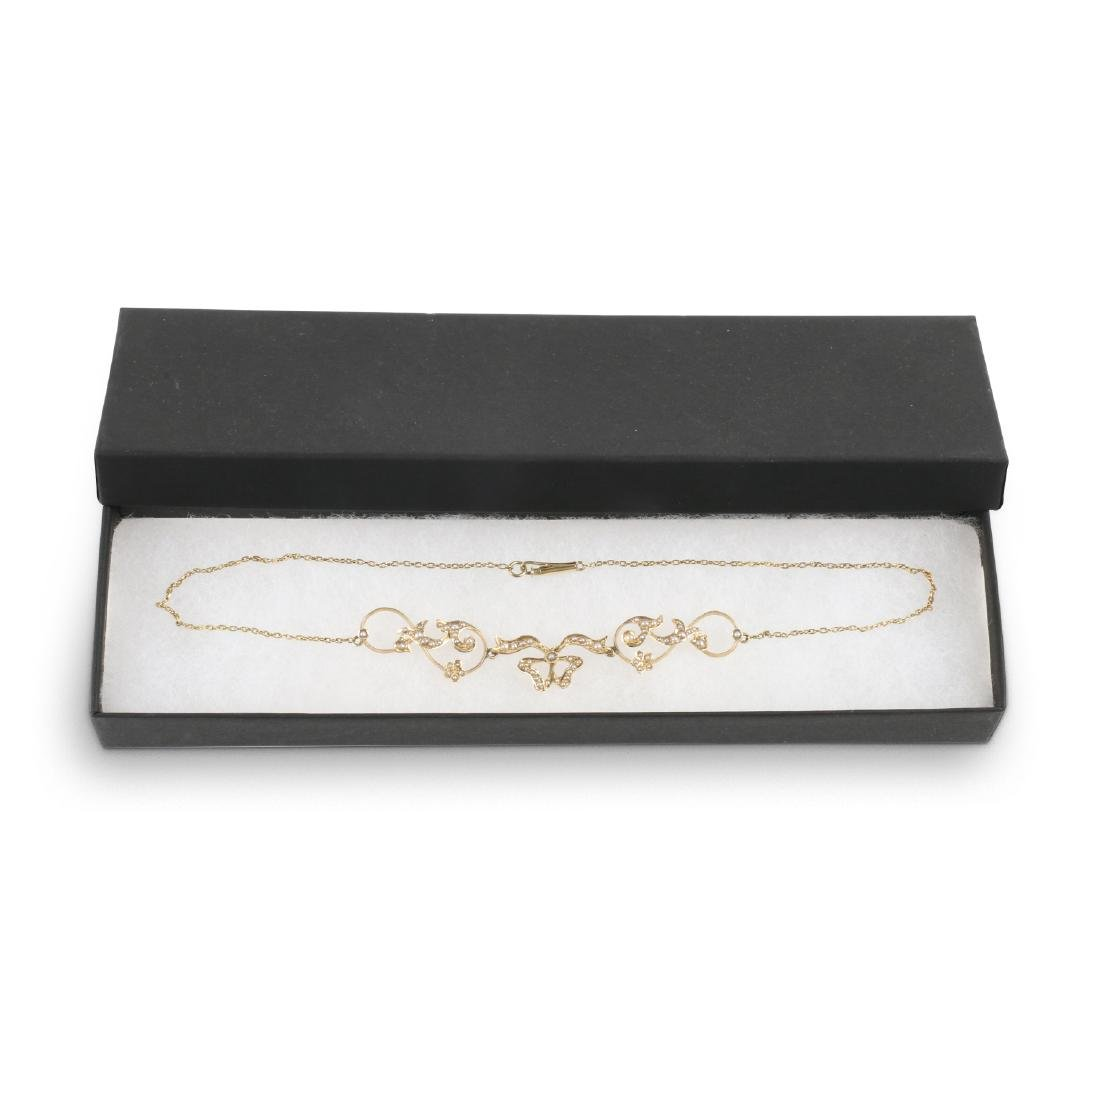 An Edwardian 14K Gold & Seed Pearl Necklace